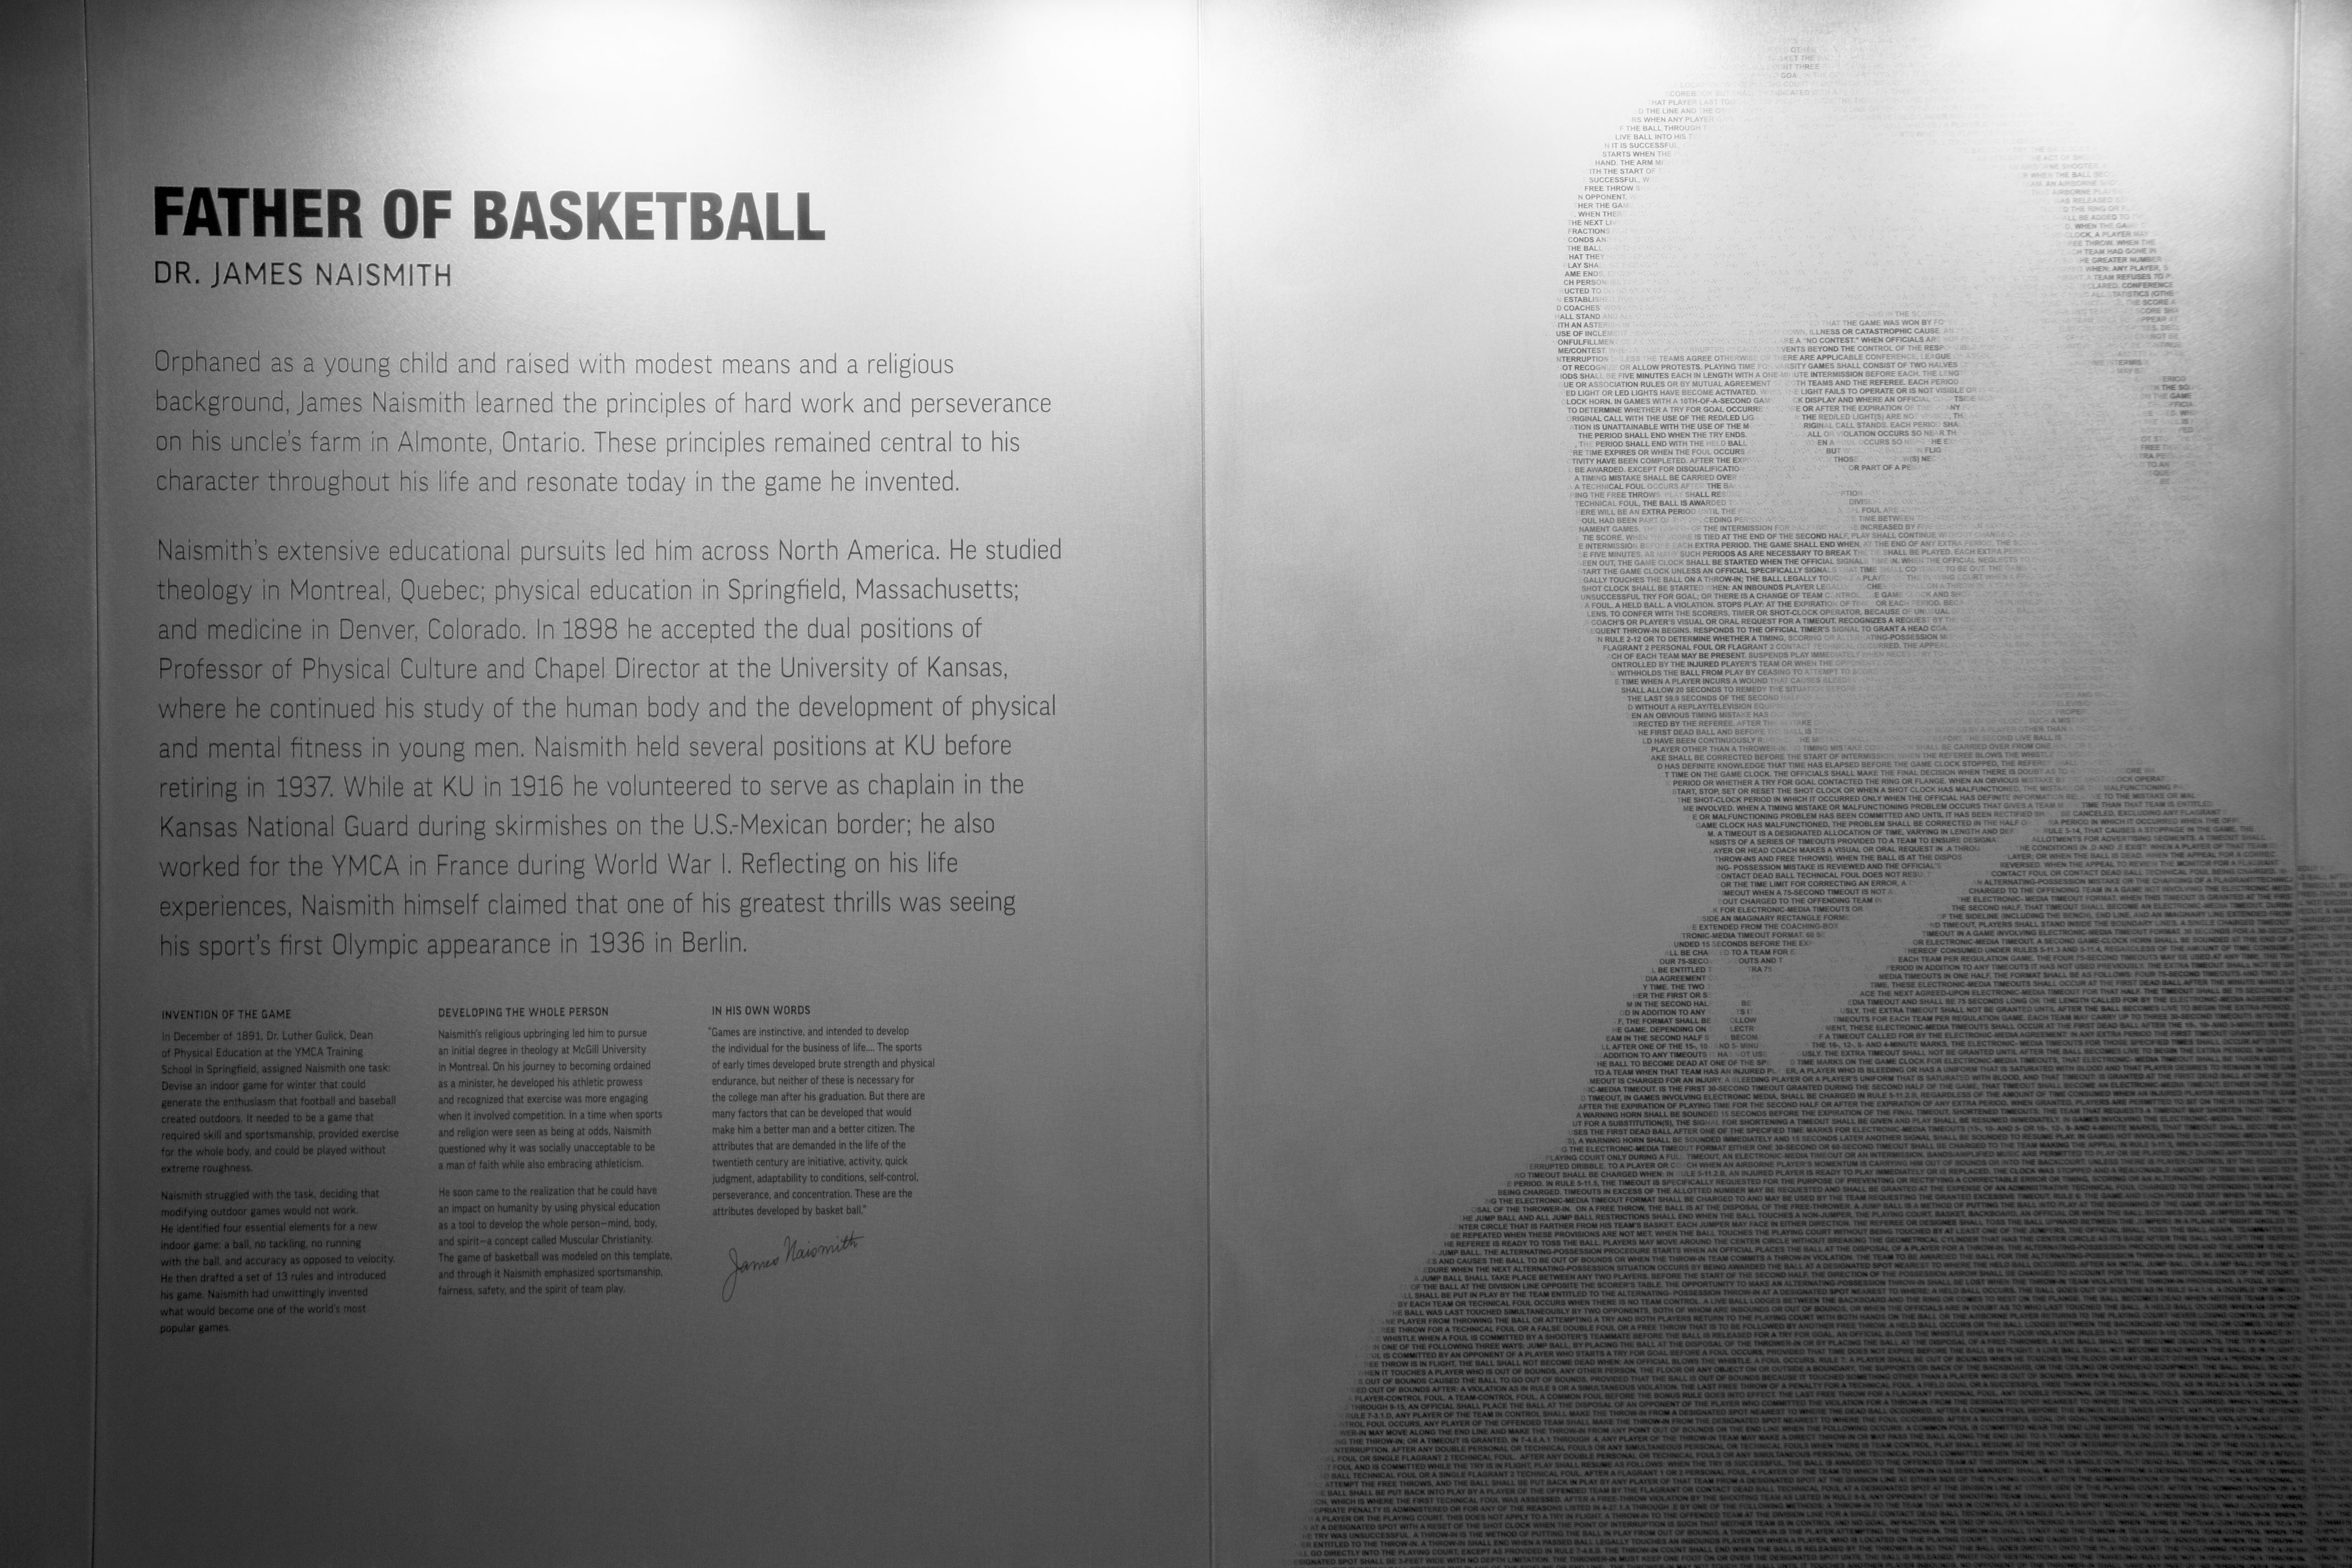 The Naismith Mural in the DeBruce Center.